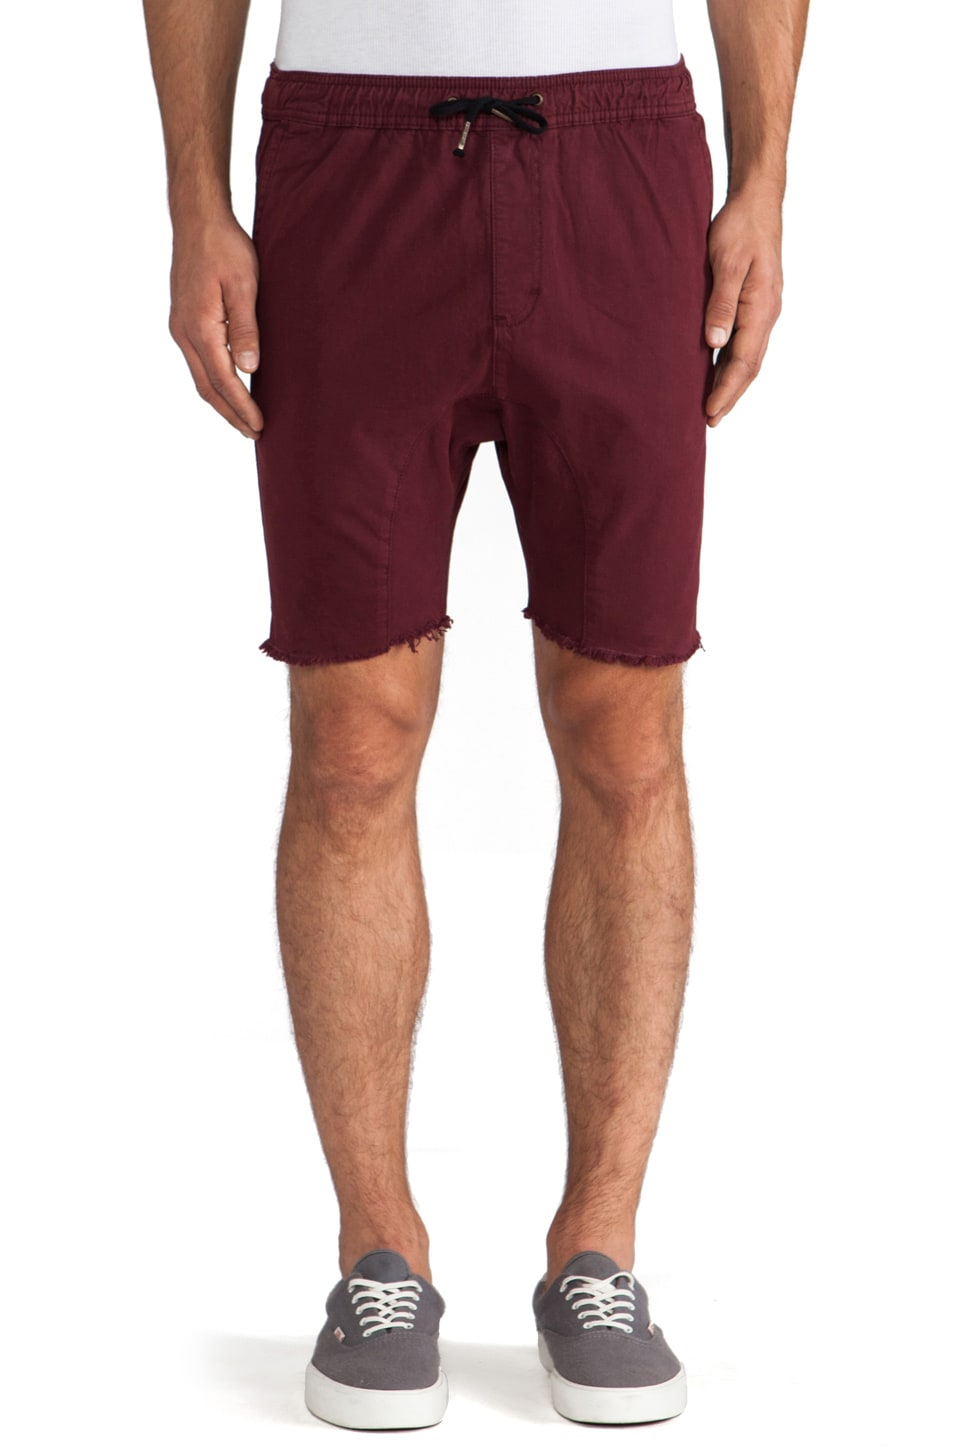 Zanerobe Sureshot Short in Burgundy